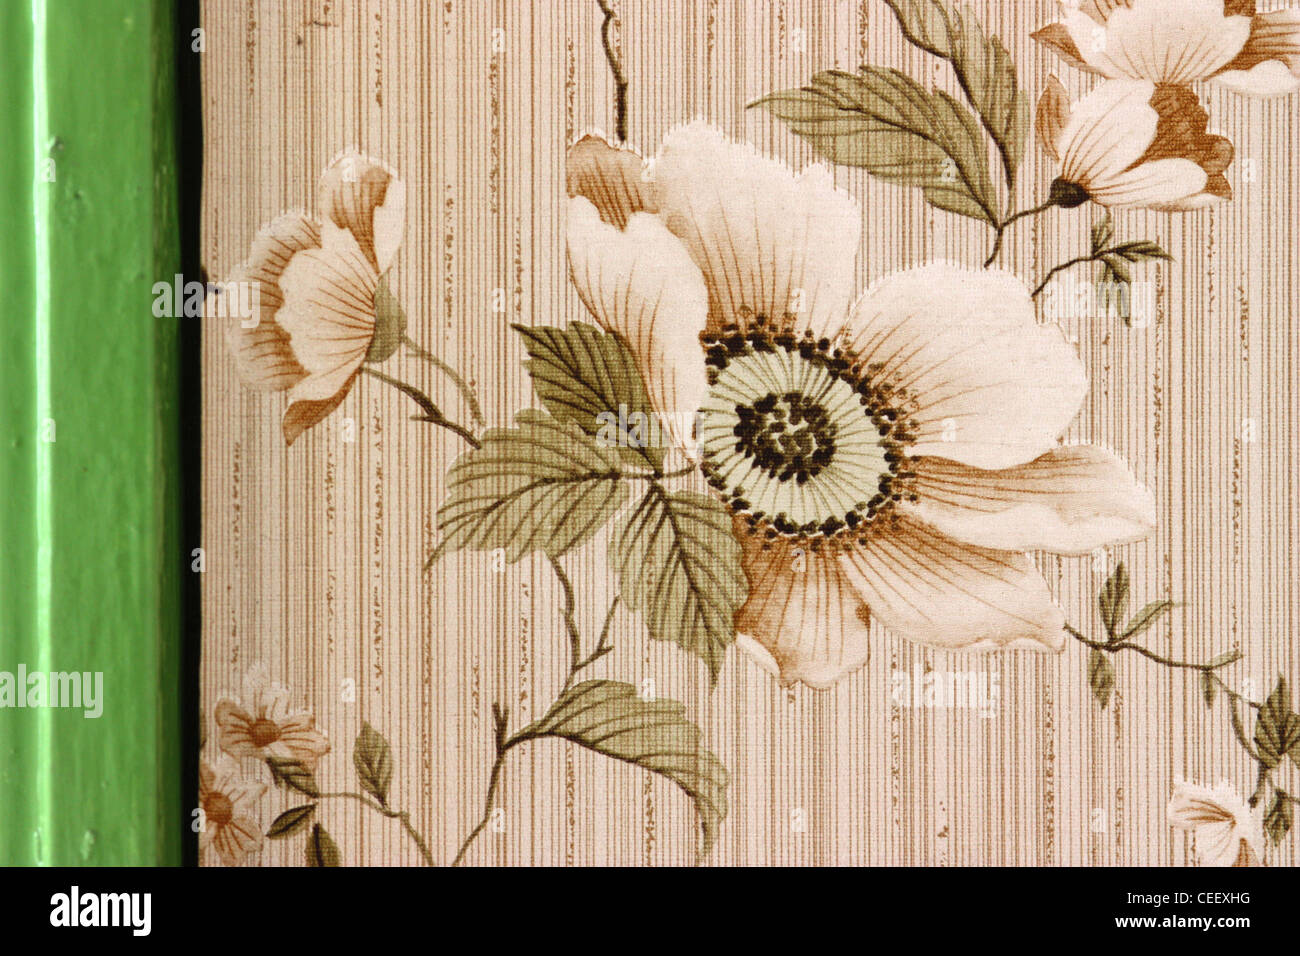 Wallpaper with flower and window frame painted bright green - Stock Image